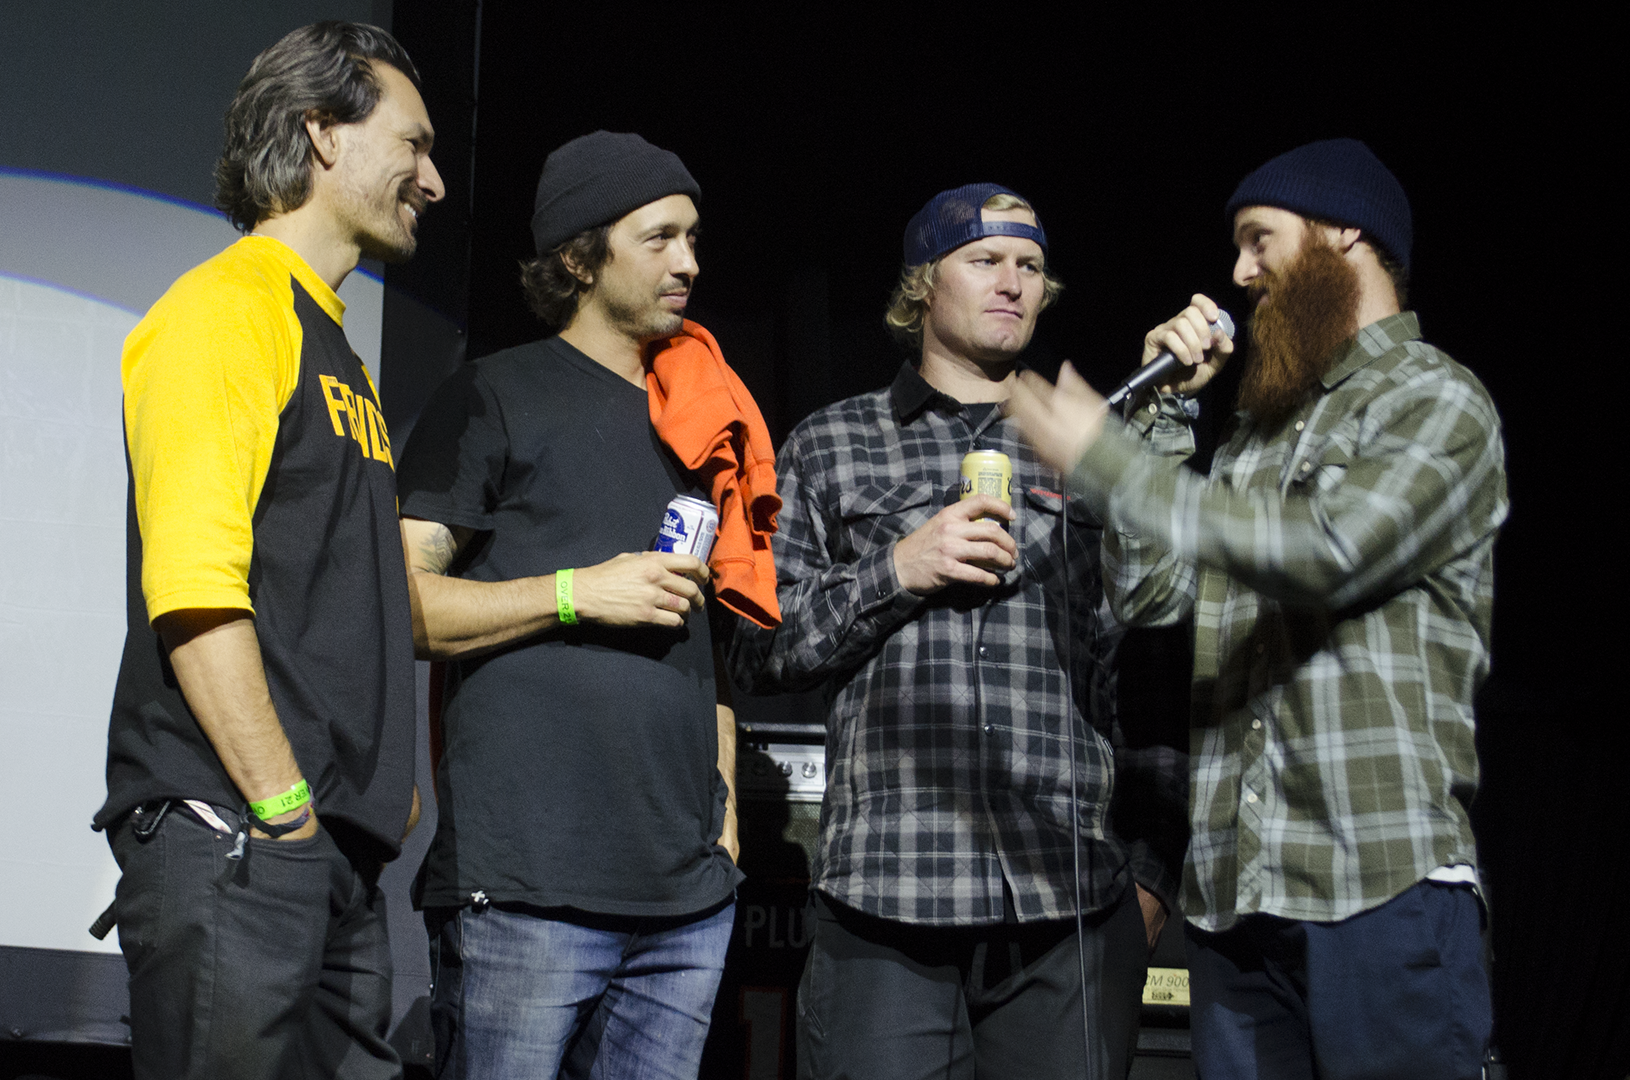 Pat talking about his crew after the showing of Satellite's Crew Battle at Summit Music Hall